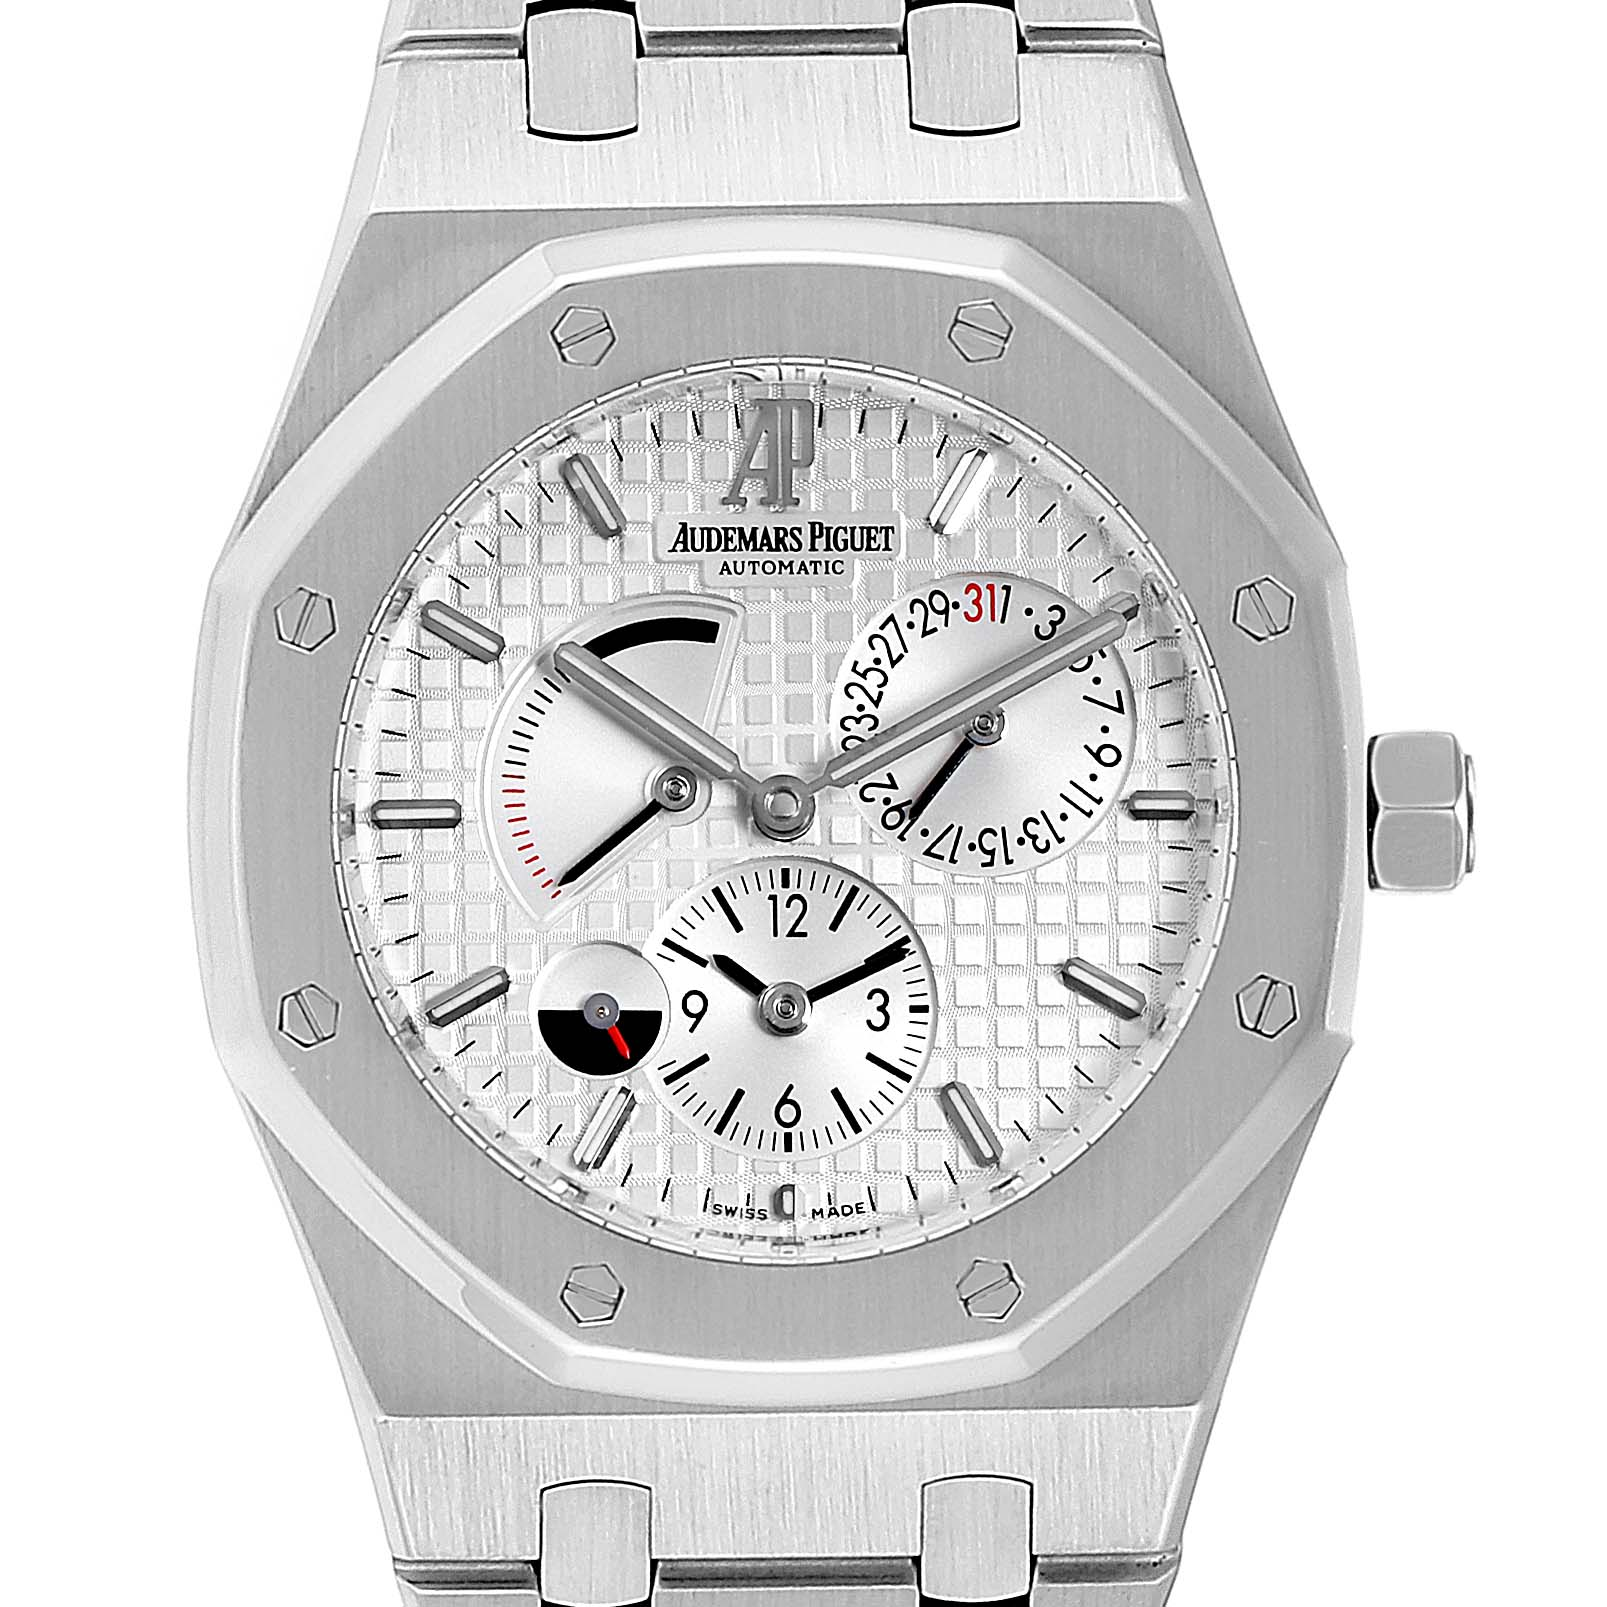 Audemars Piguet Royal Oak Dual Time Power Reserve Mens Watch 26120ST SwissWatchExpo